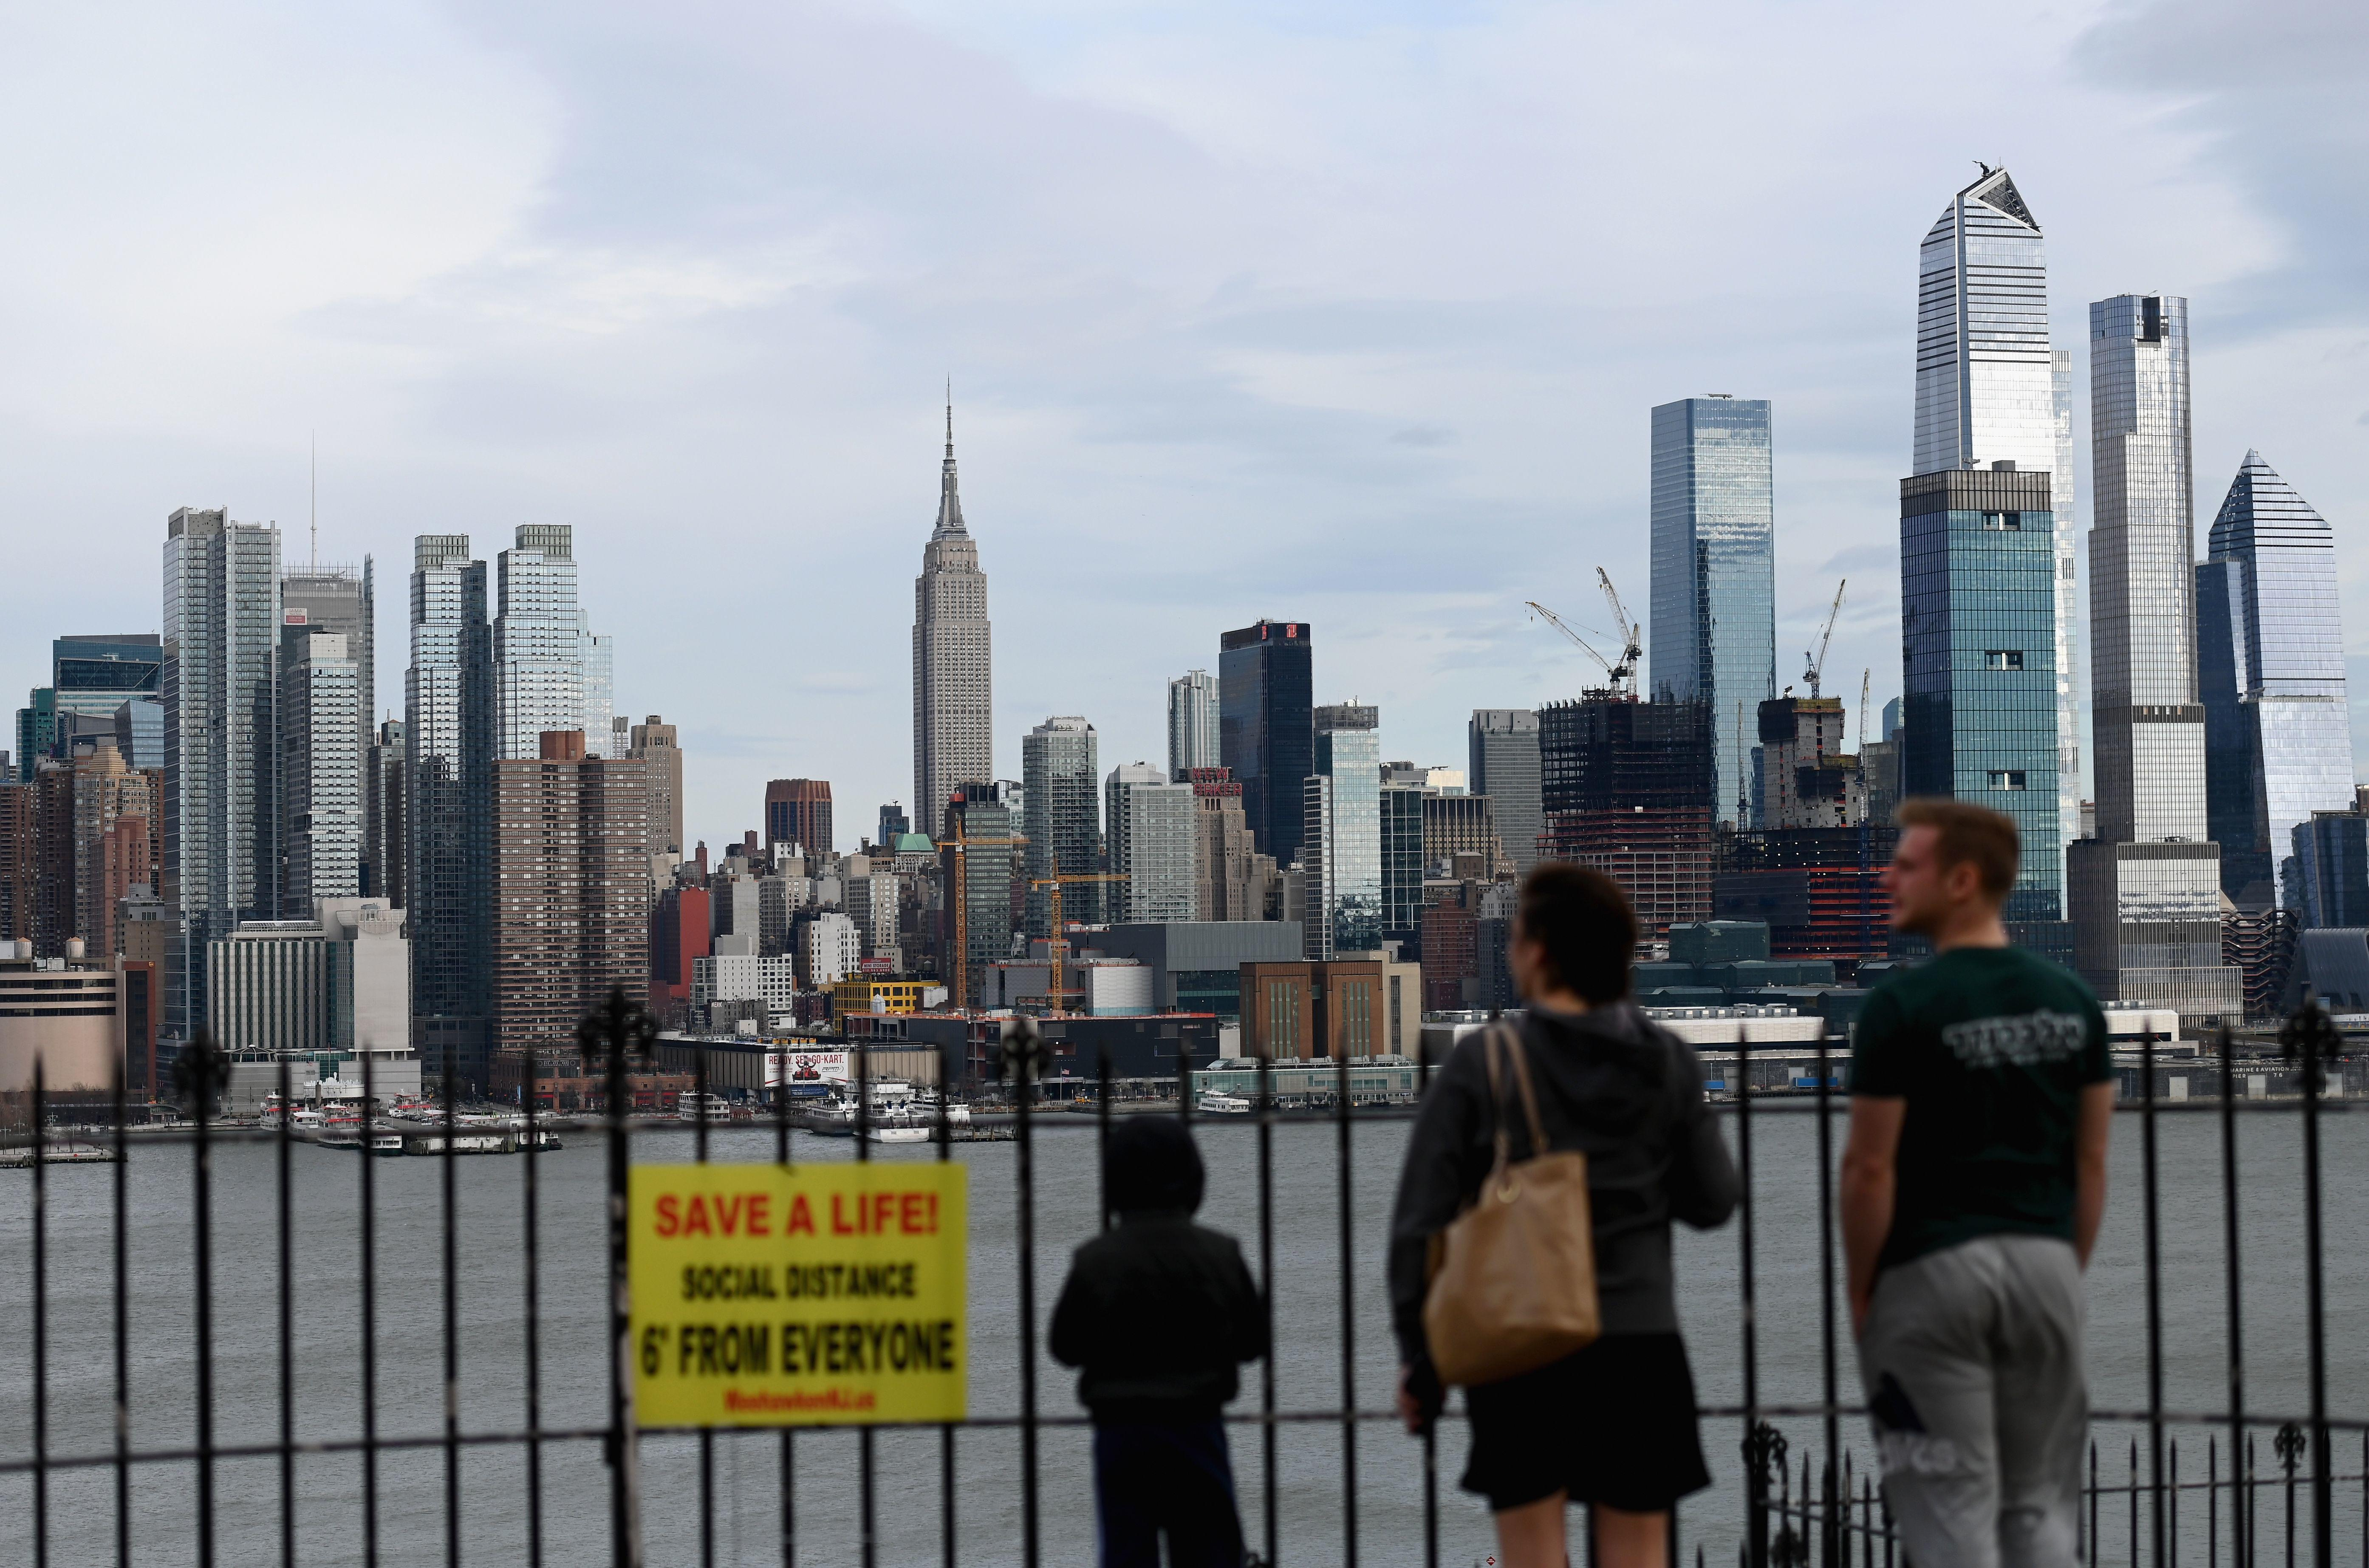 NYC setting up COVID-19 checkpoints for visitors